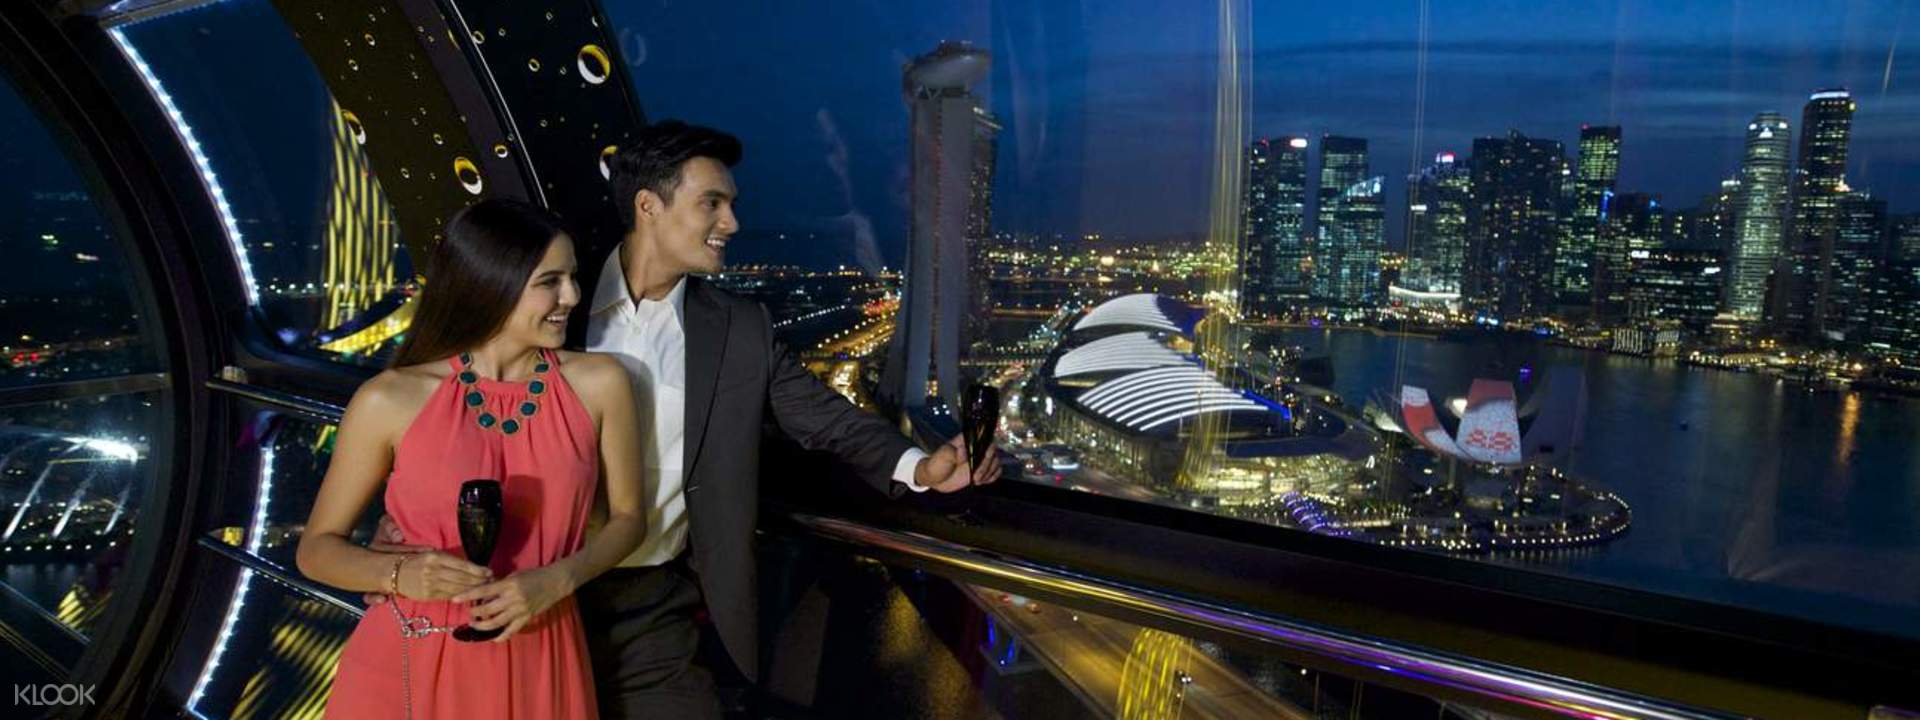 Singapore Flyer Premium Beverage Flight""